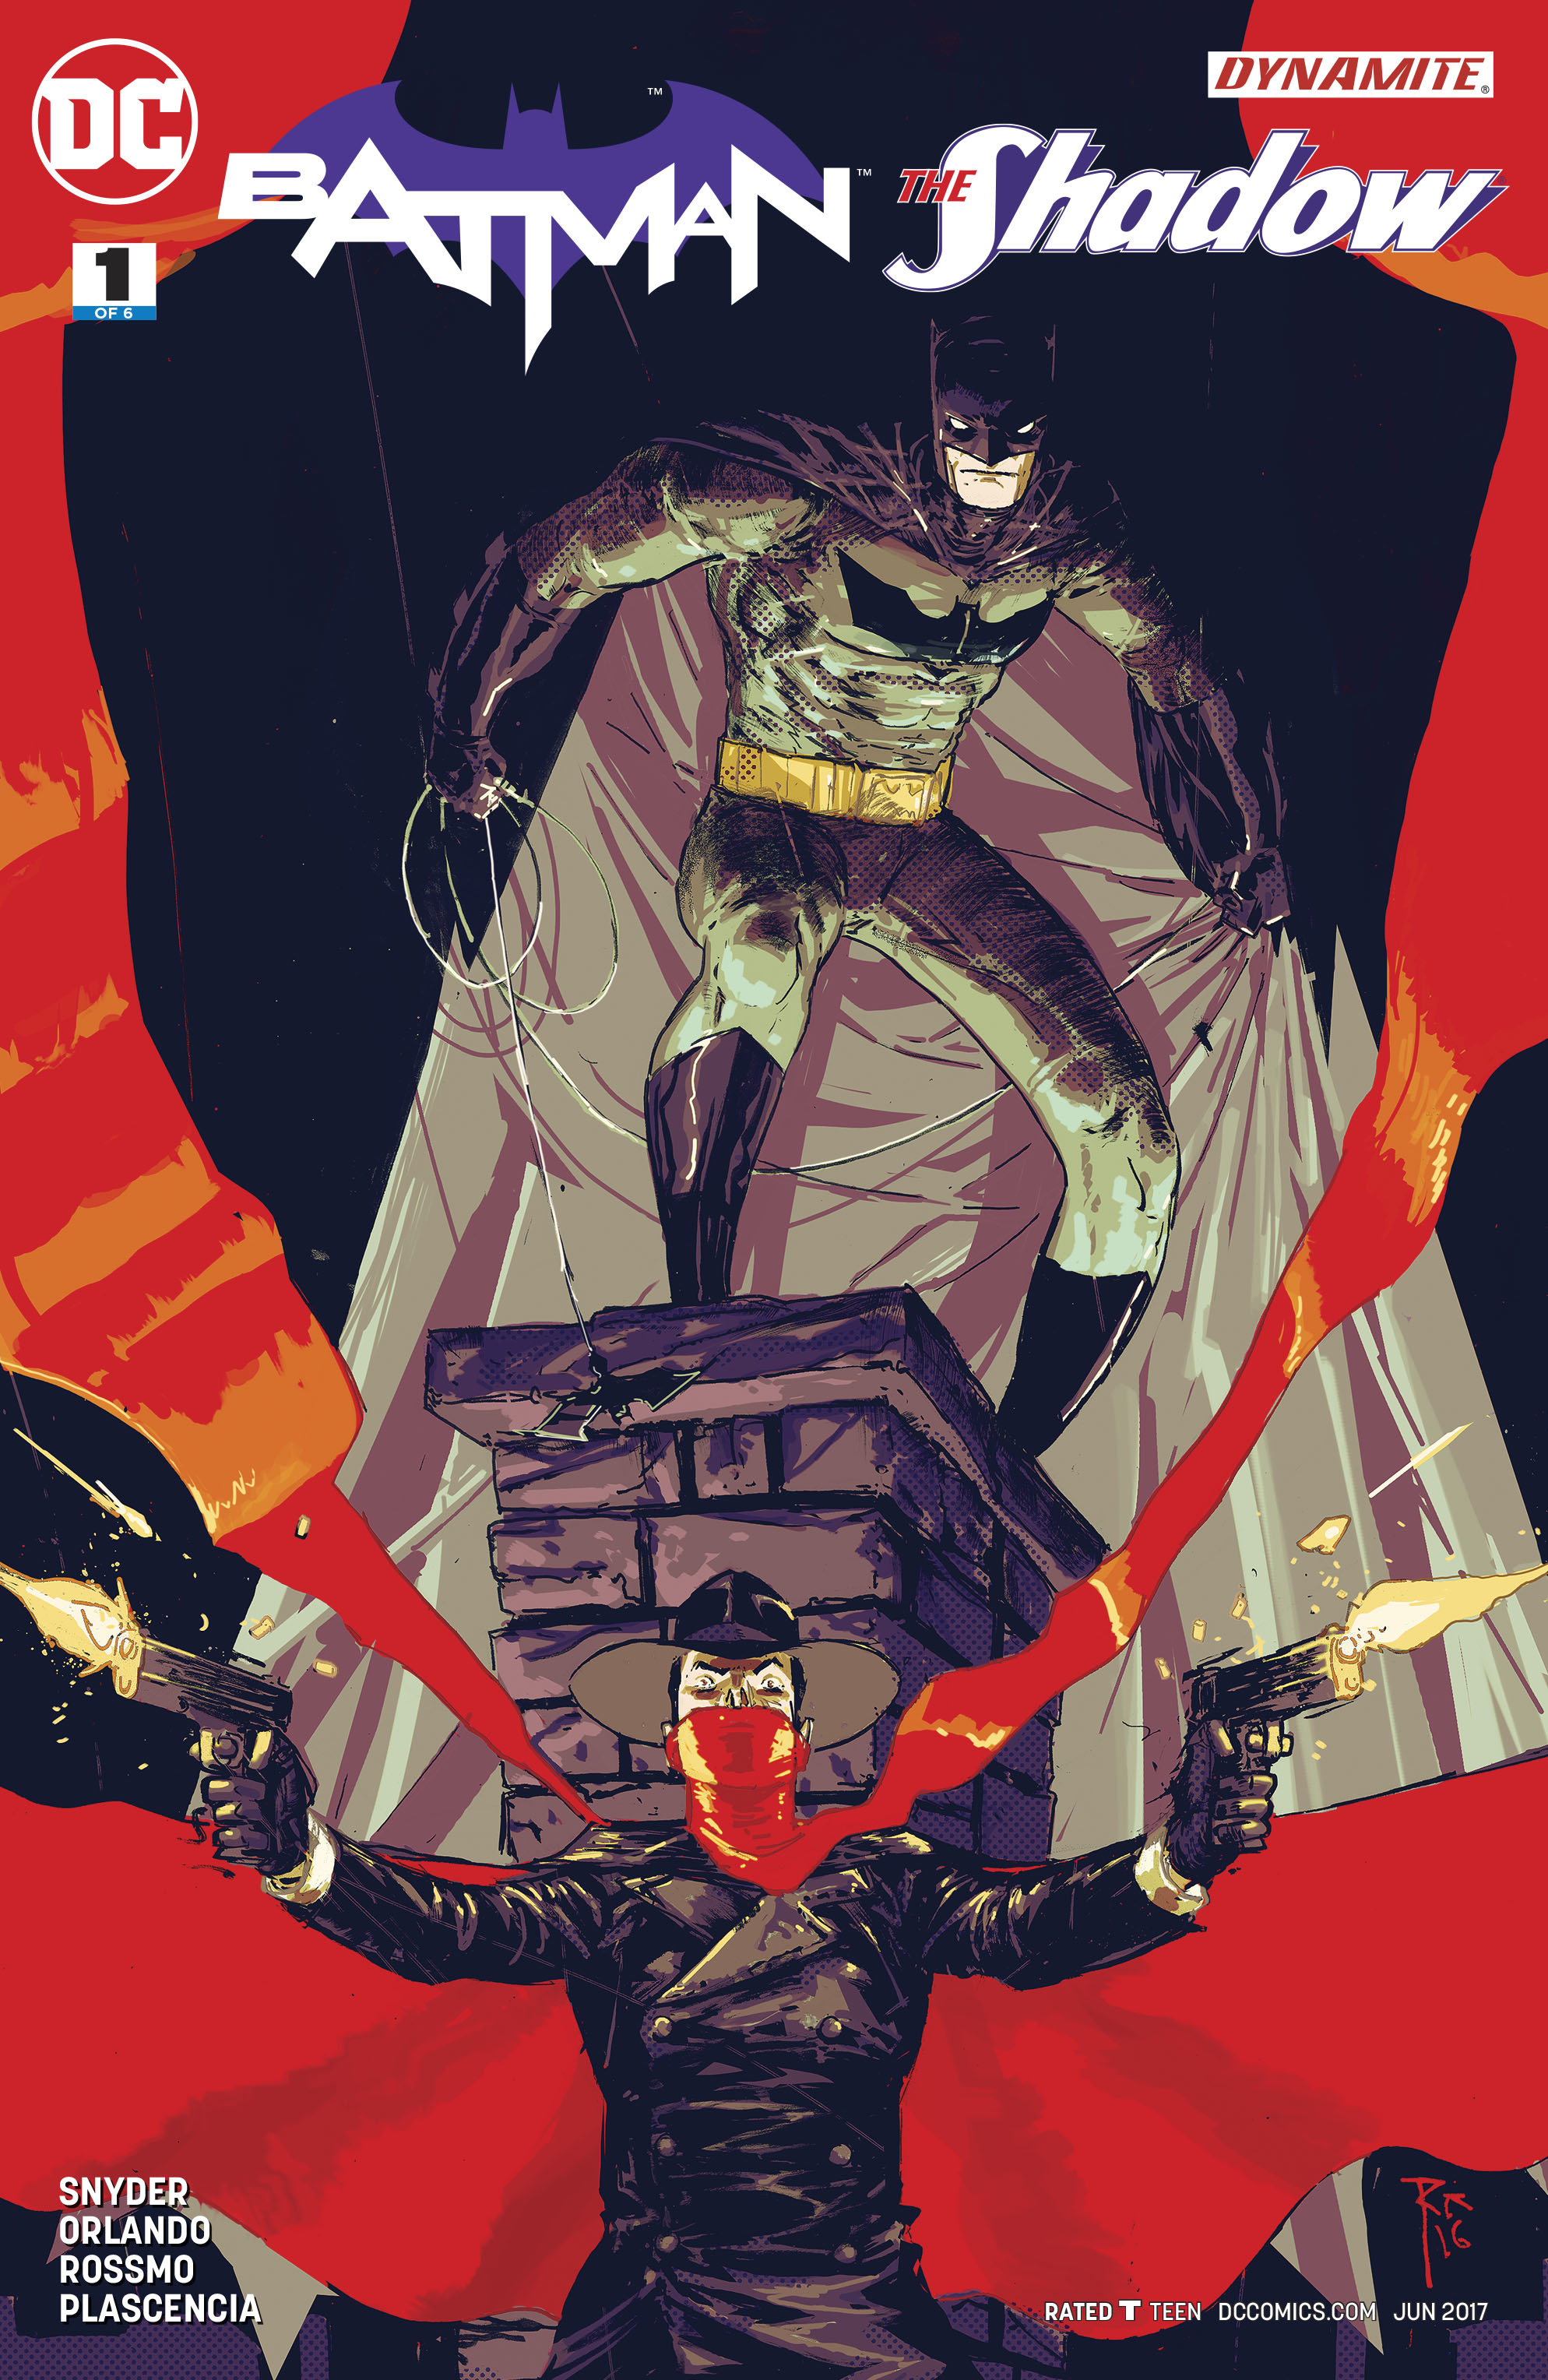 BATMAN THE SHADOW #1